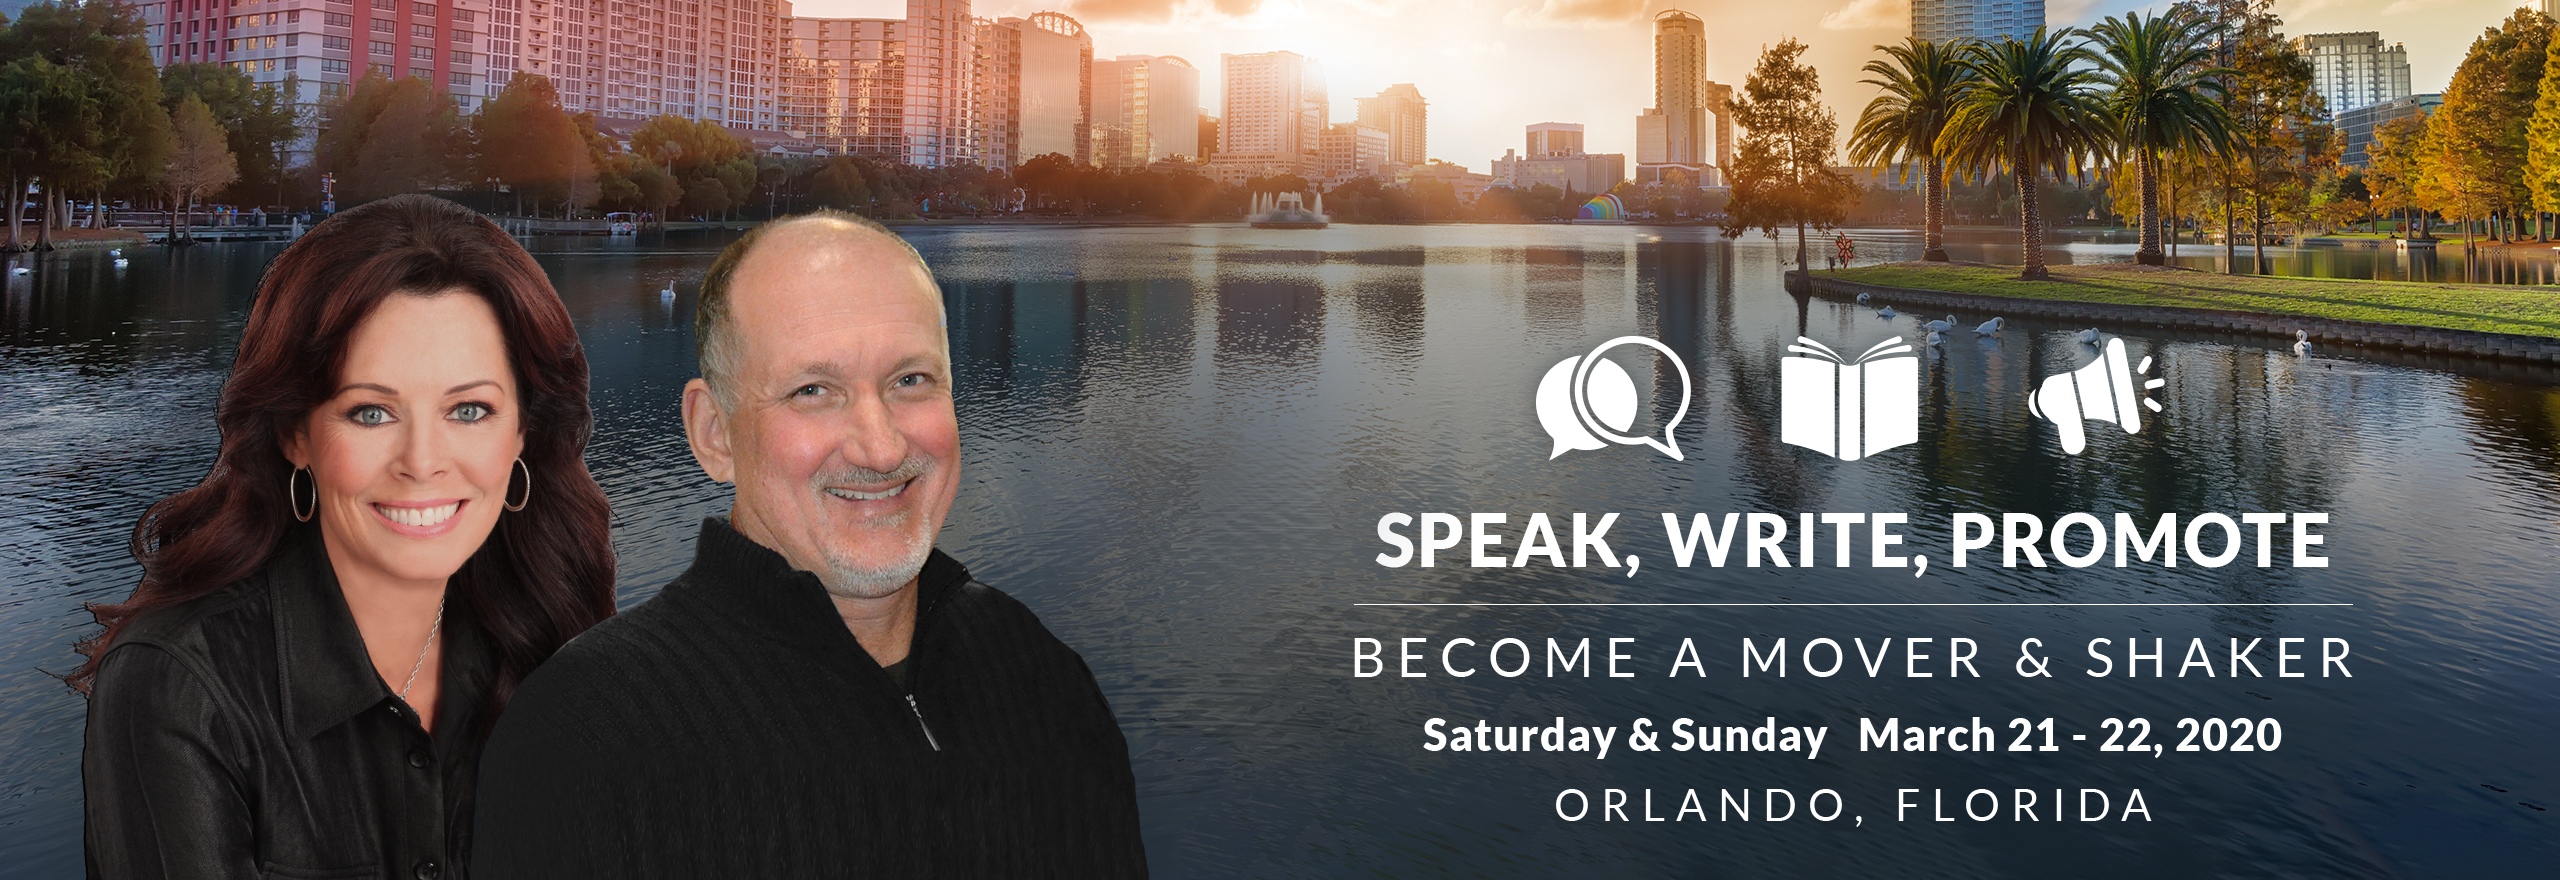 Speak, Write, Promote: Become A Mover and Shaker 2020 - Orlando